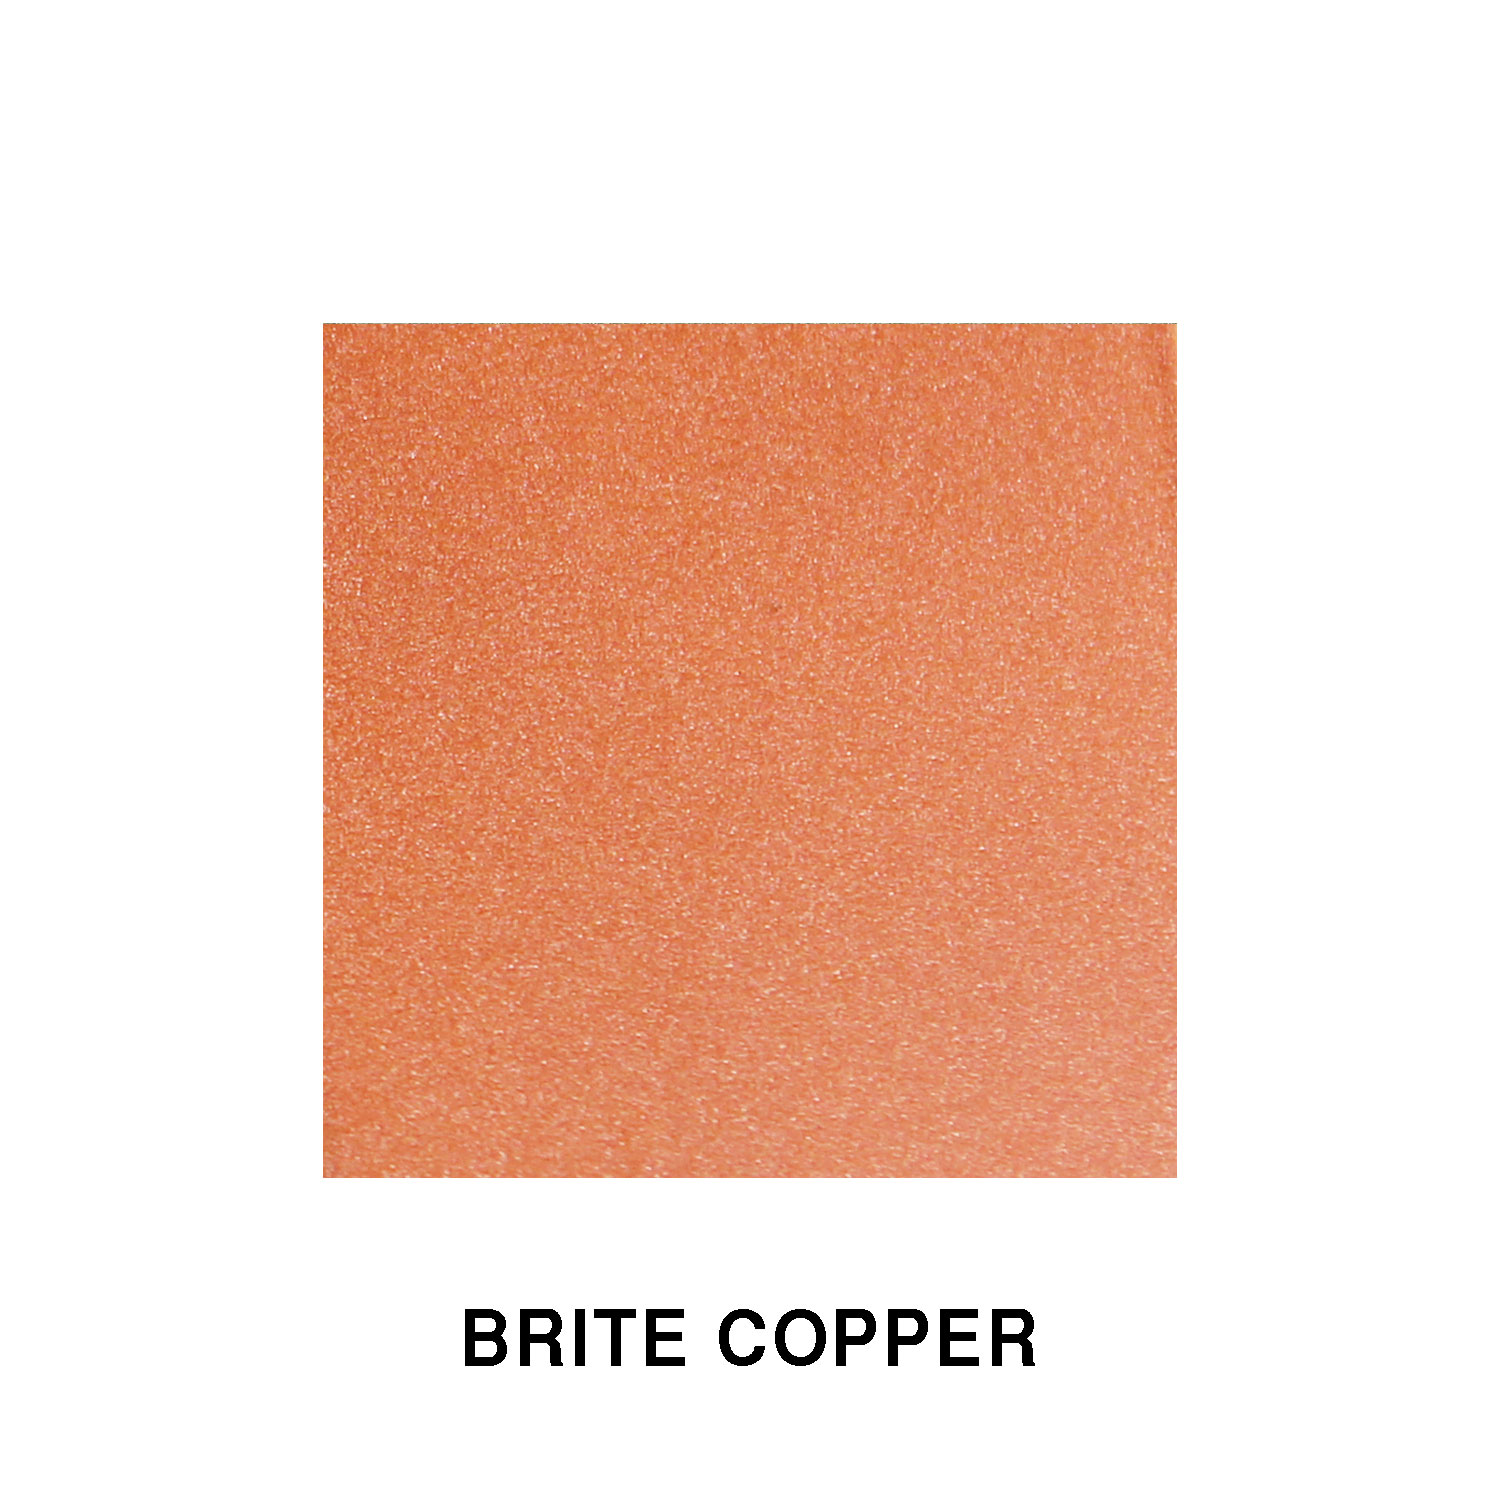 Brite Copper Fiberglass Finish